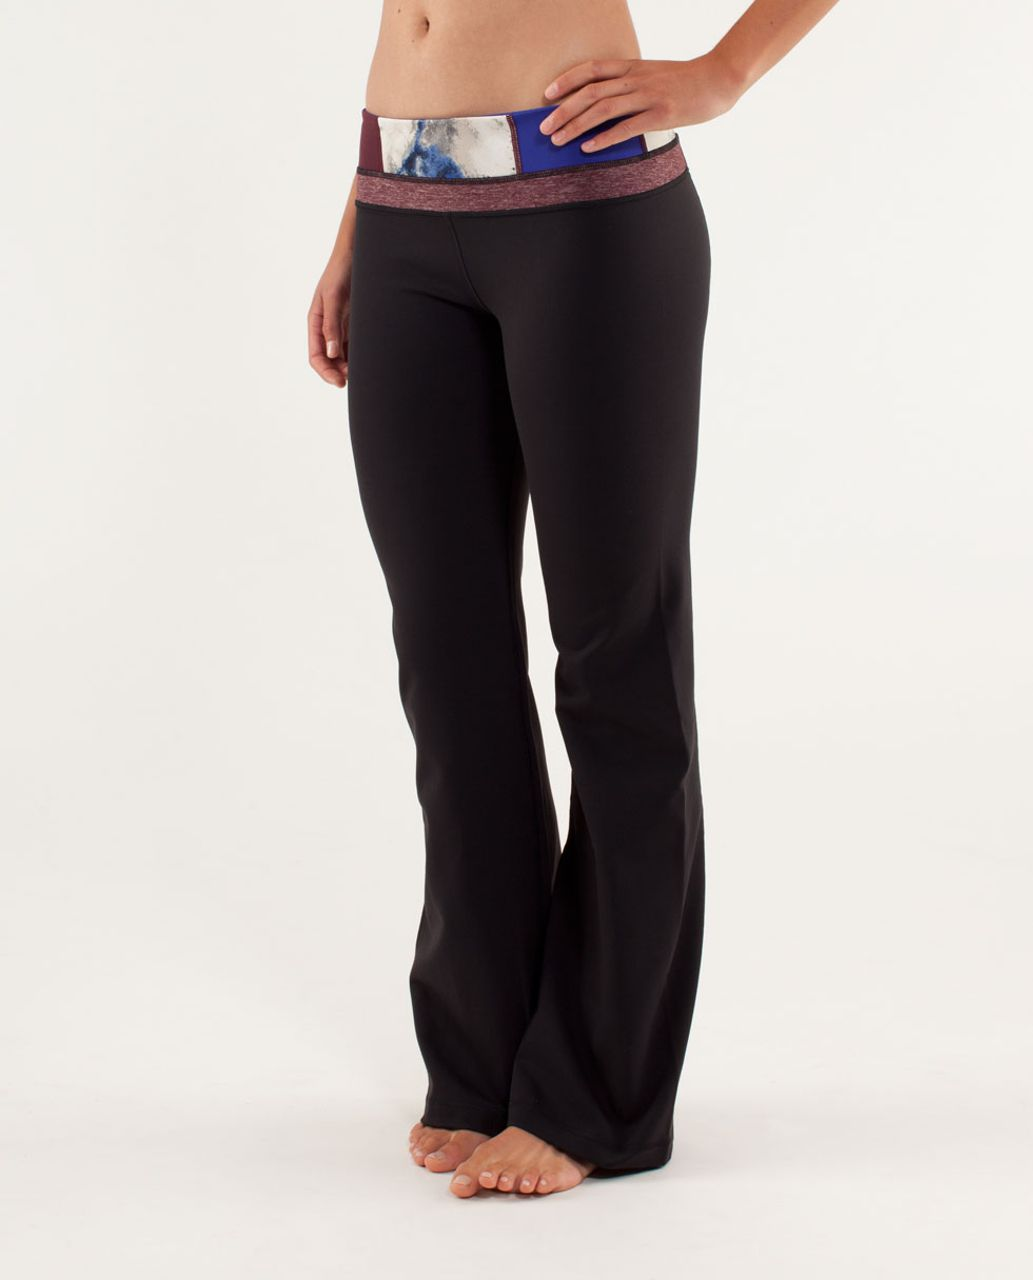 Lululemon Groove Pant (Regular) - Black / Fall 12 Quilt 8 / Heathered Bordeaux Drama